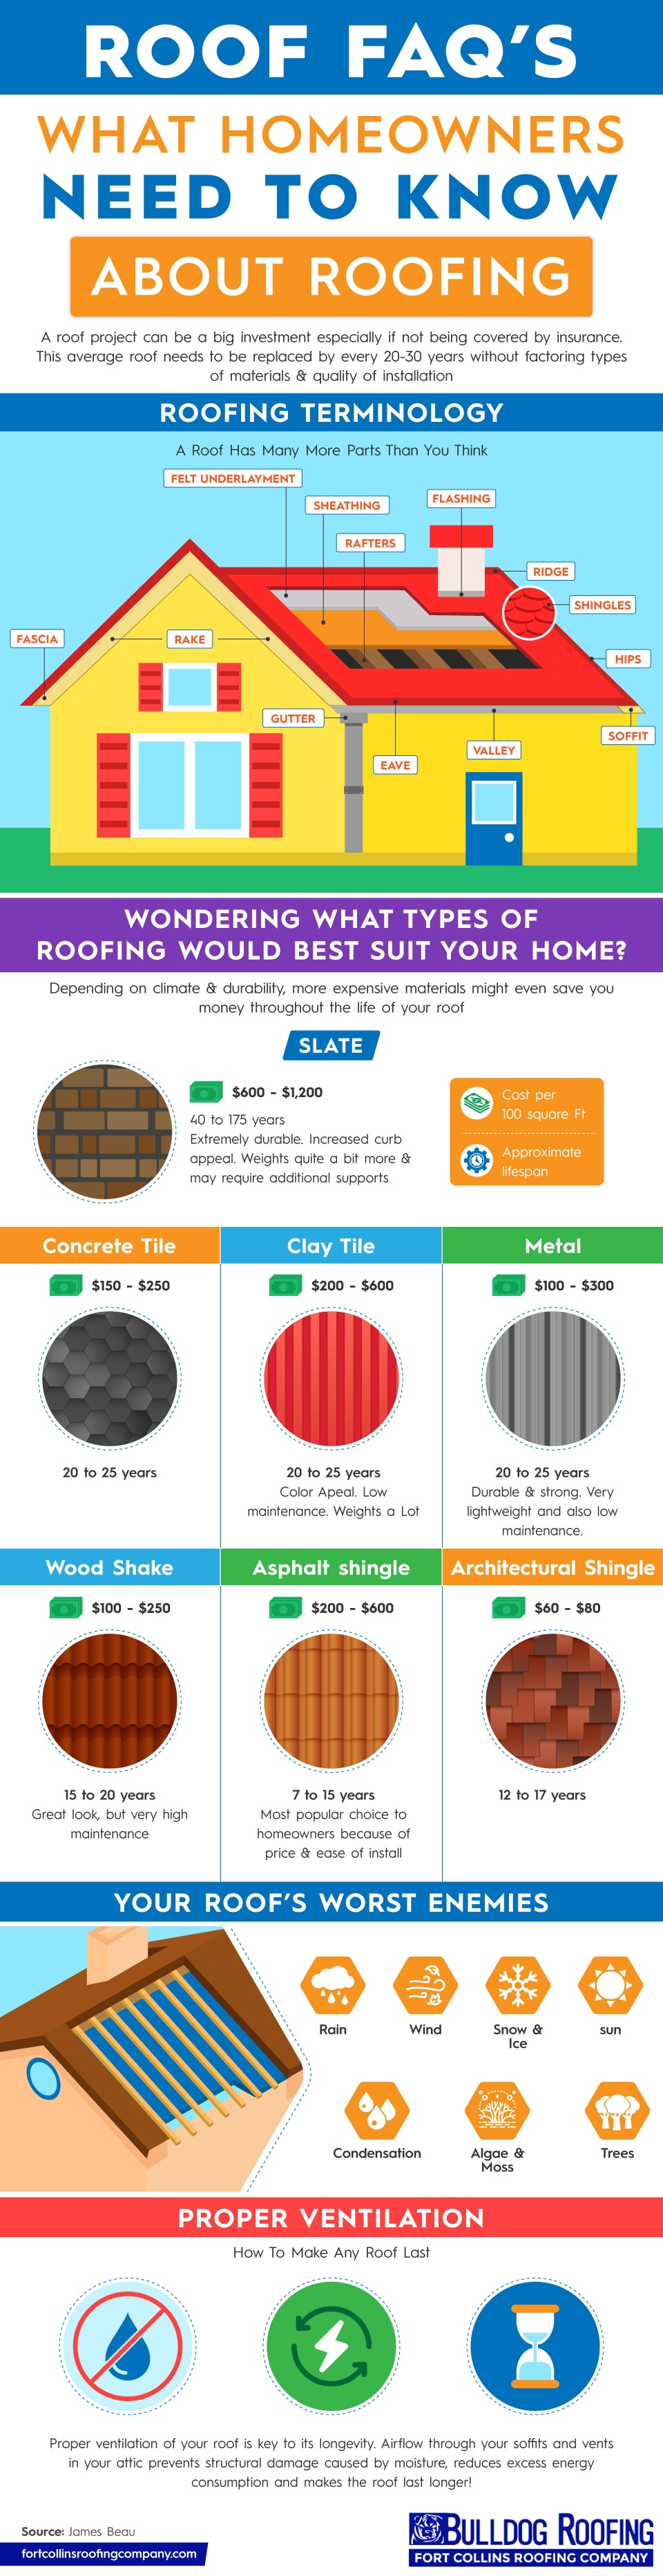 Roofing-infographic-what-homeowners-need-to-know-about-their-roof-infographic-plaza